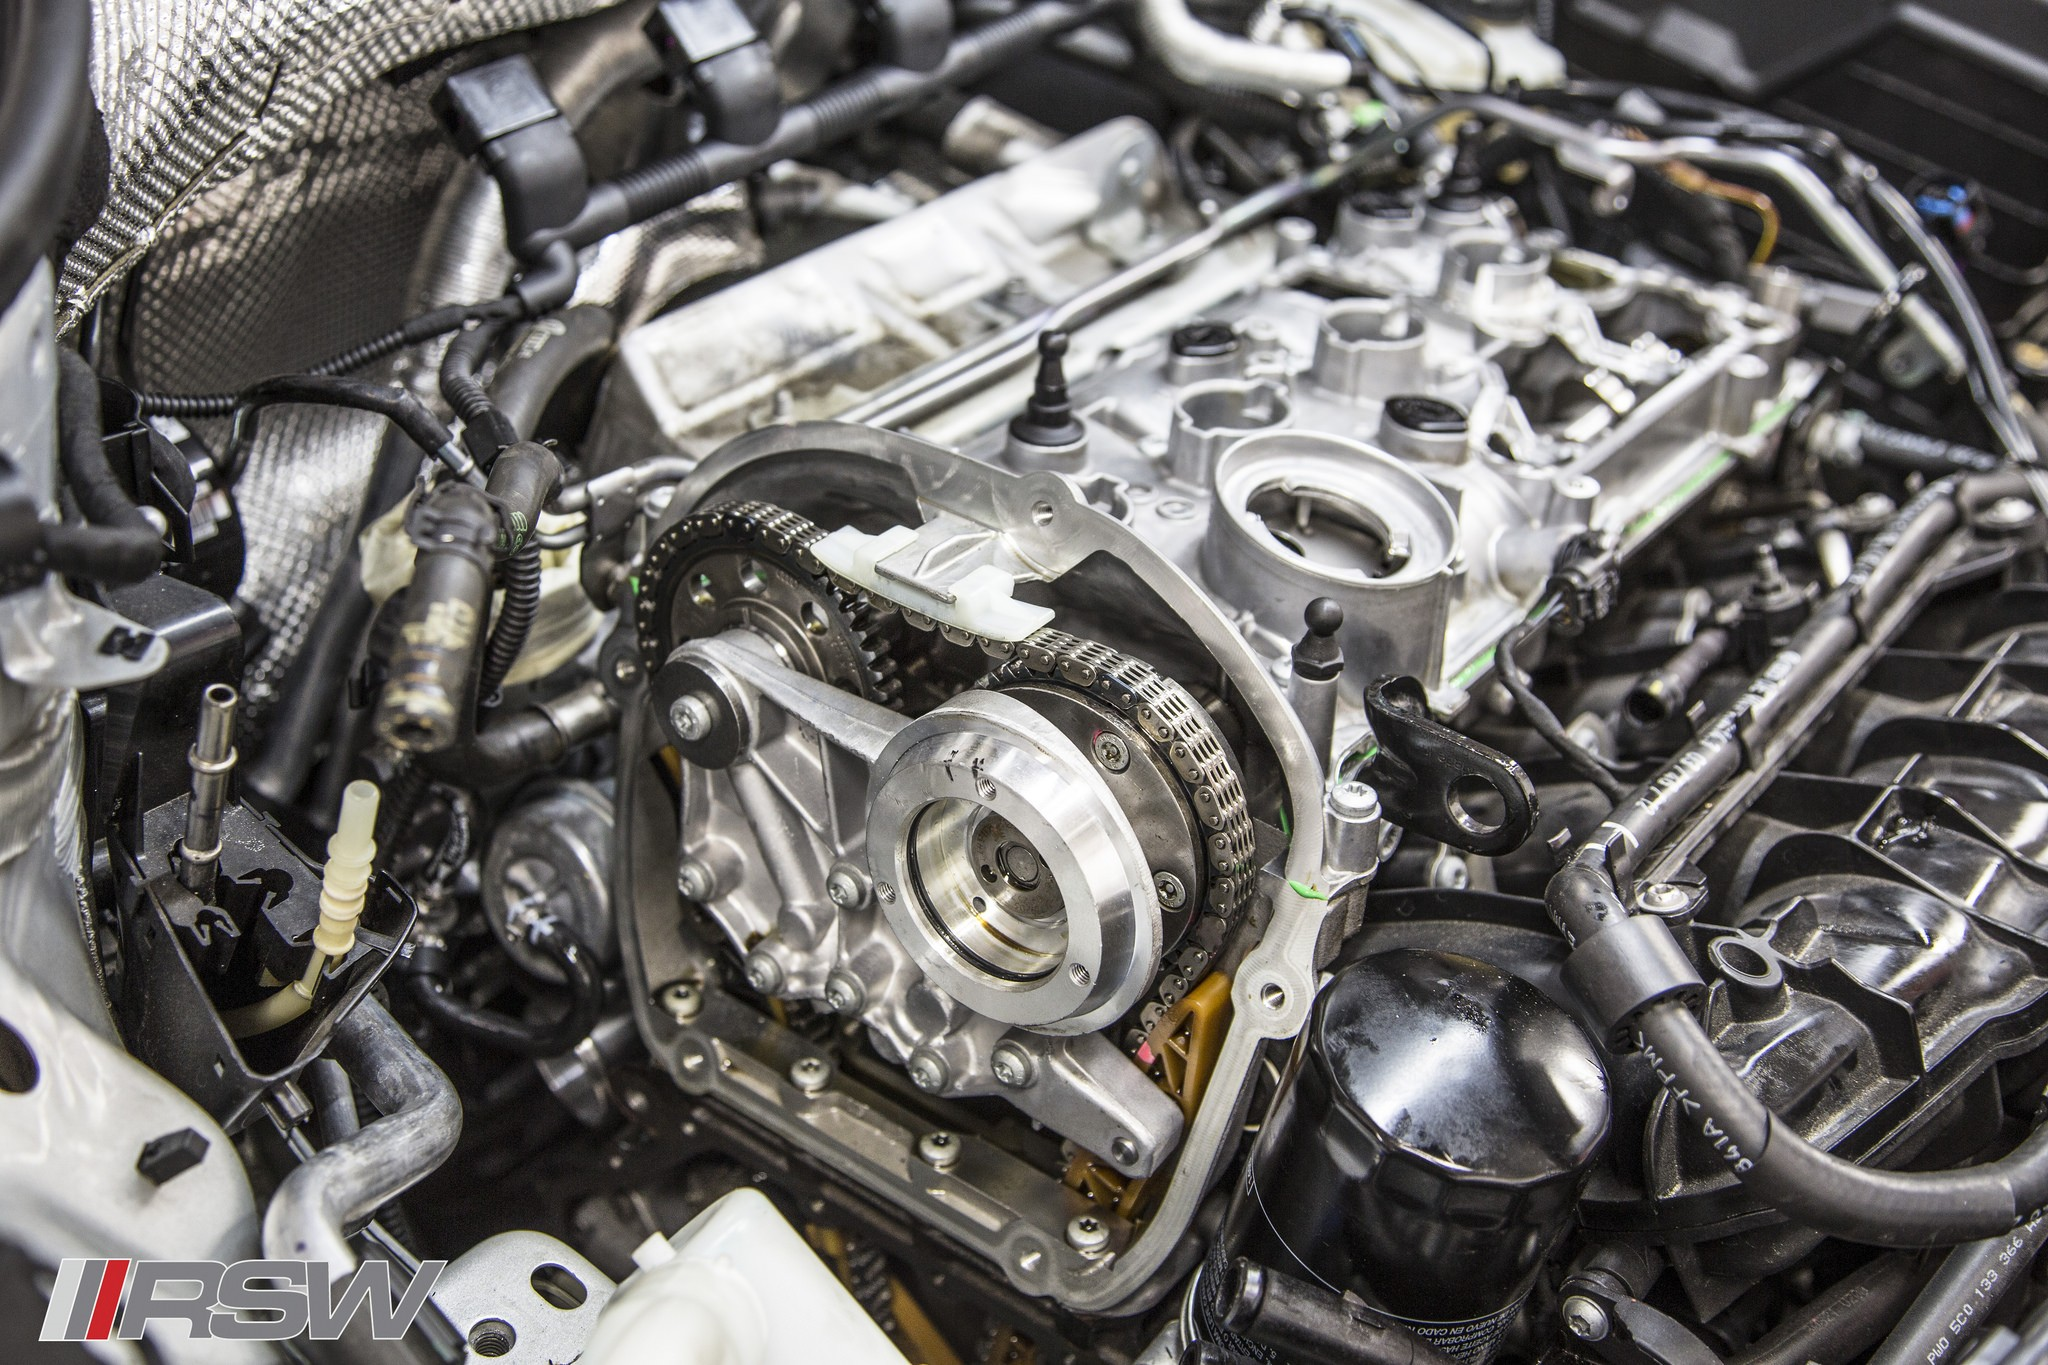 Audi A3 Engine Diagram Audi A4 Oil Consumption Fix Used Audi A5 Coupe Buying Guide 2007 Of Audi A3 Engine Diagram